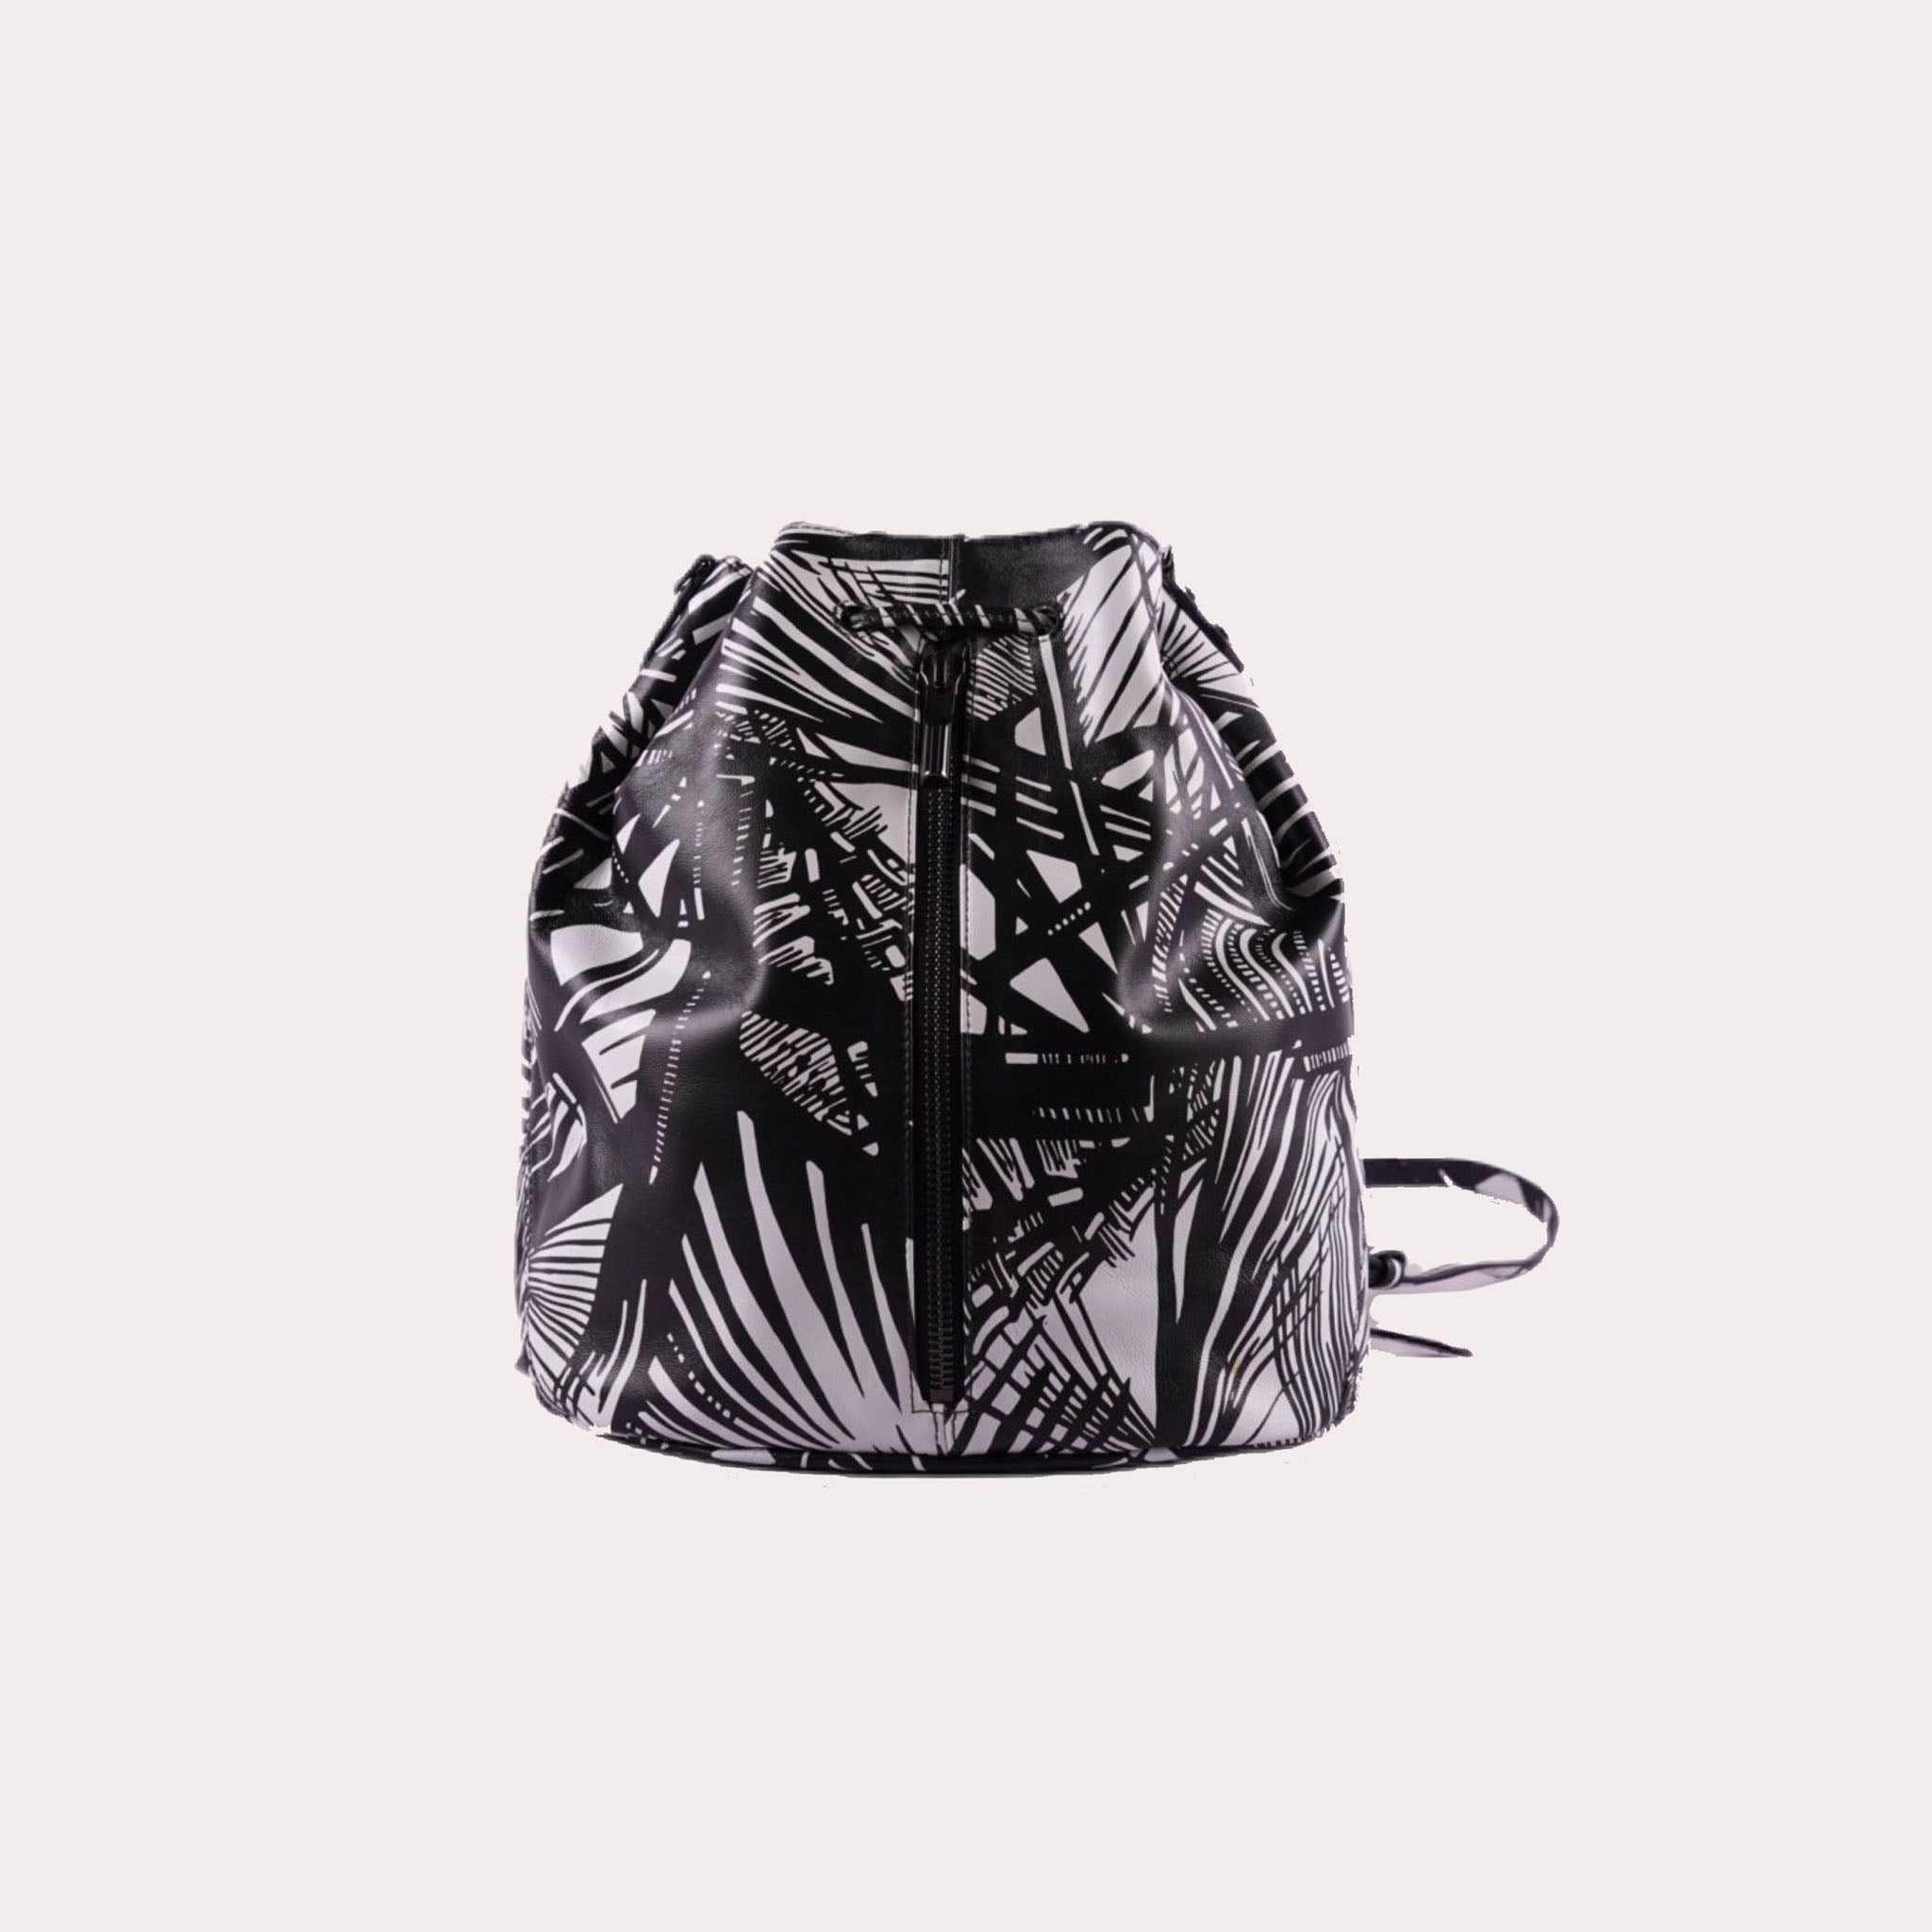 Cynnie Sling Leather Bucket Bag with Front Zipper